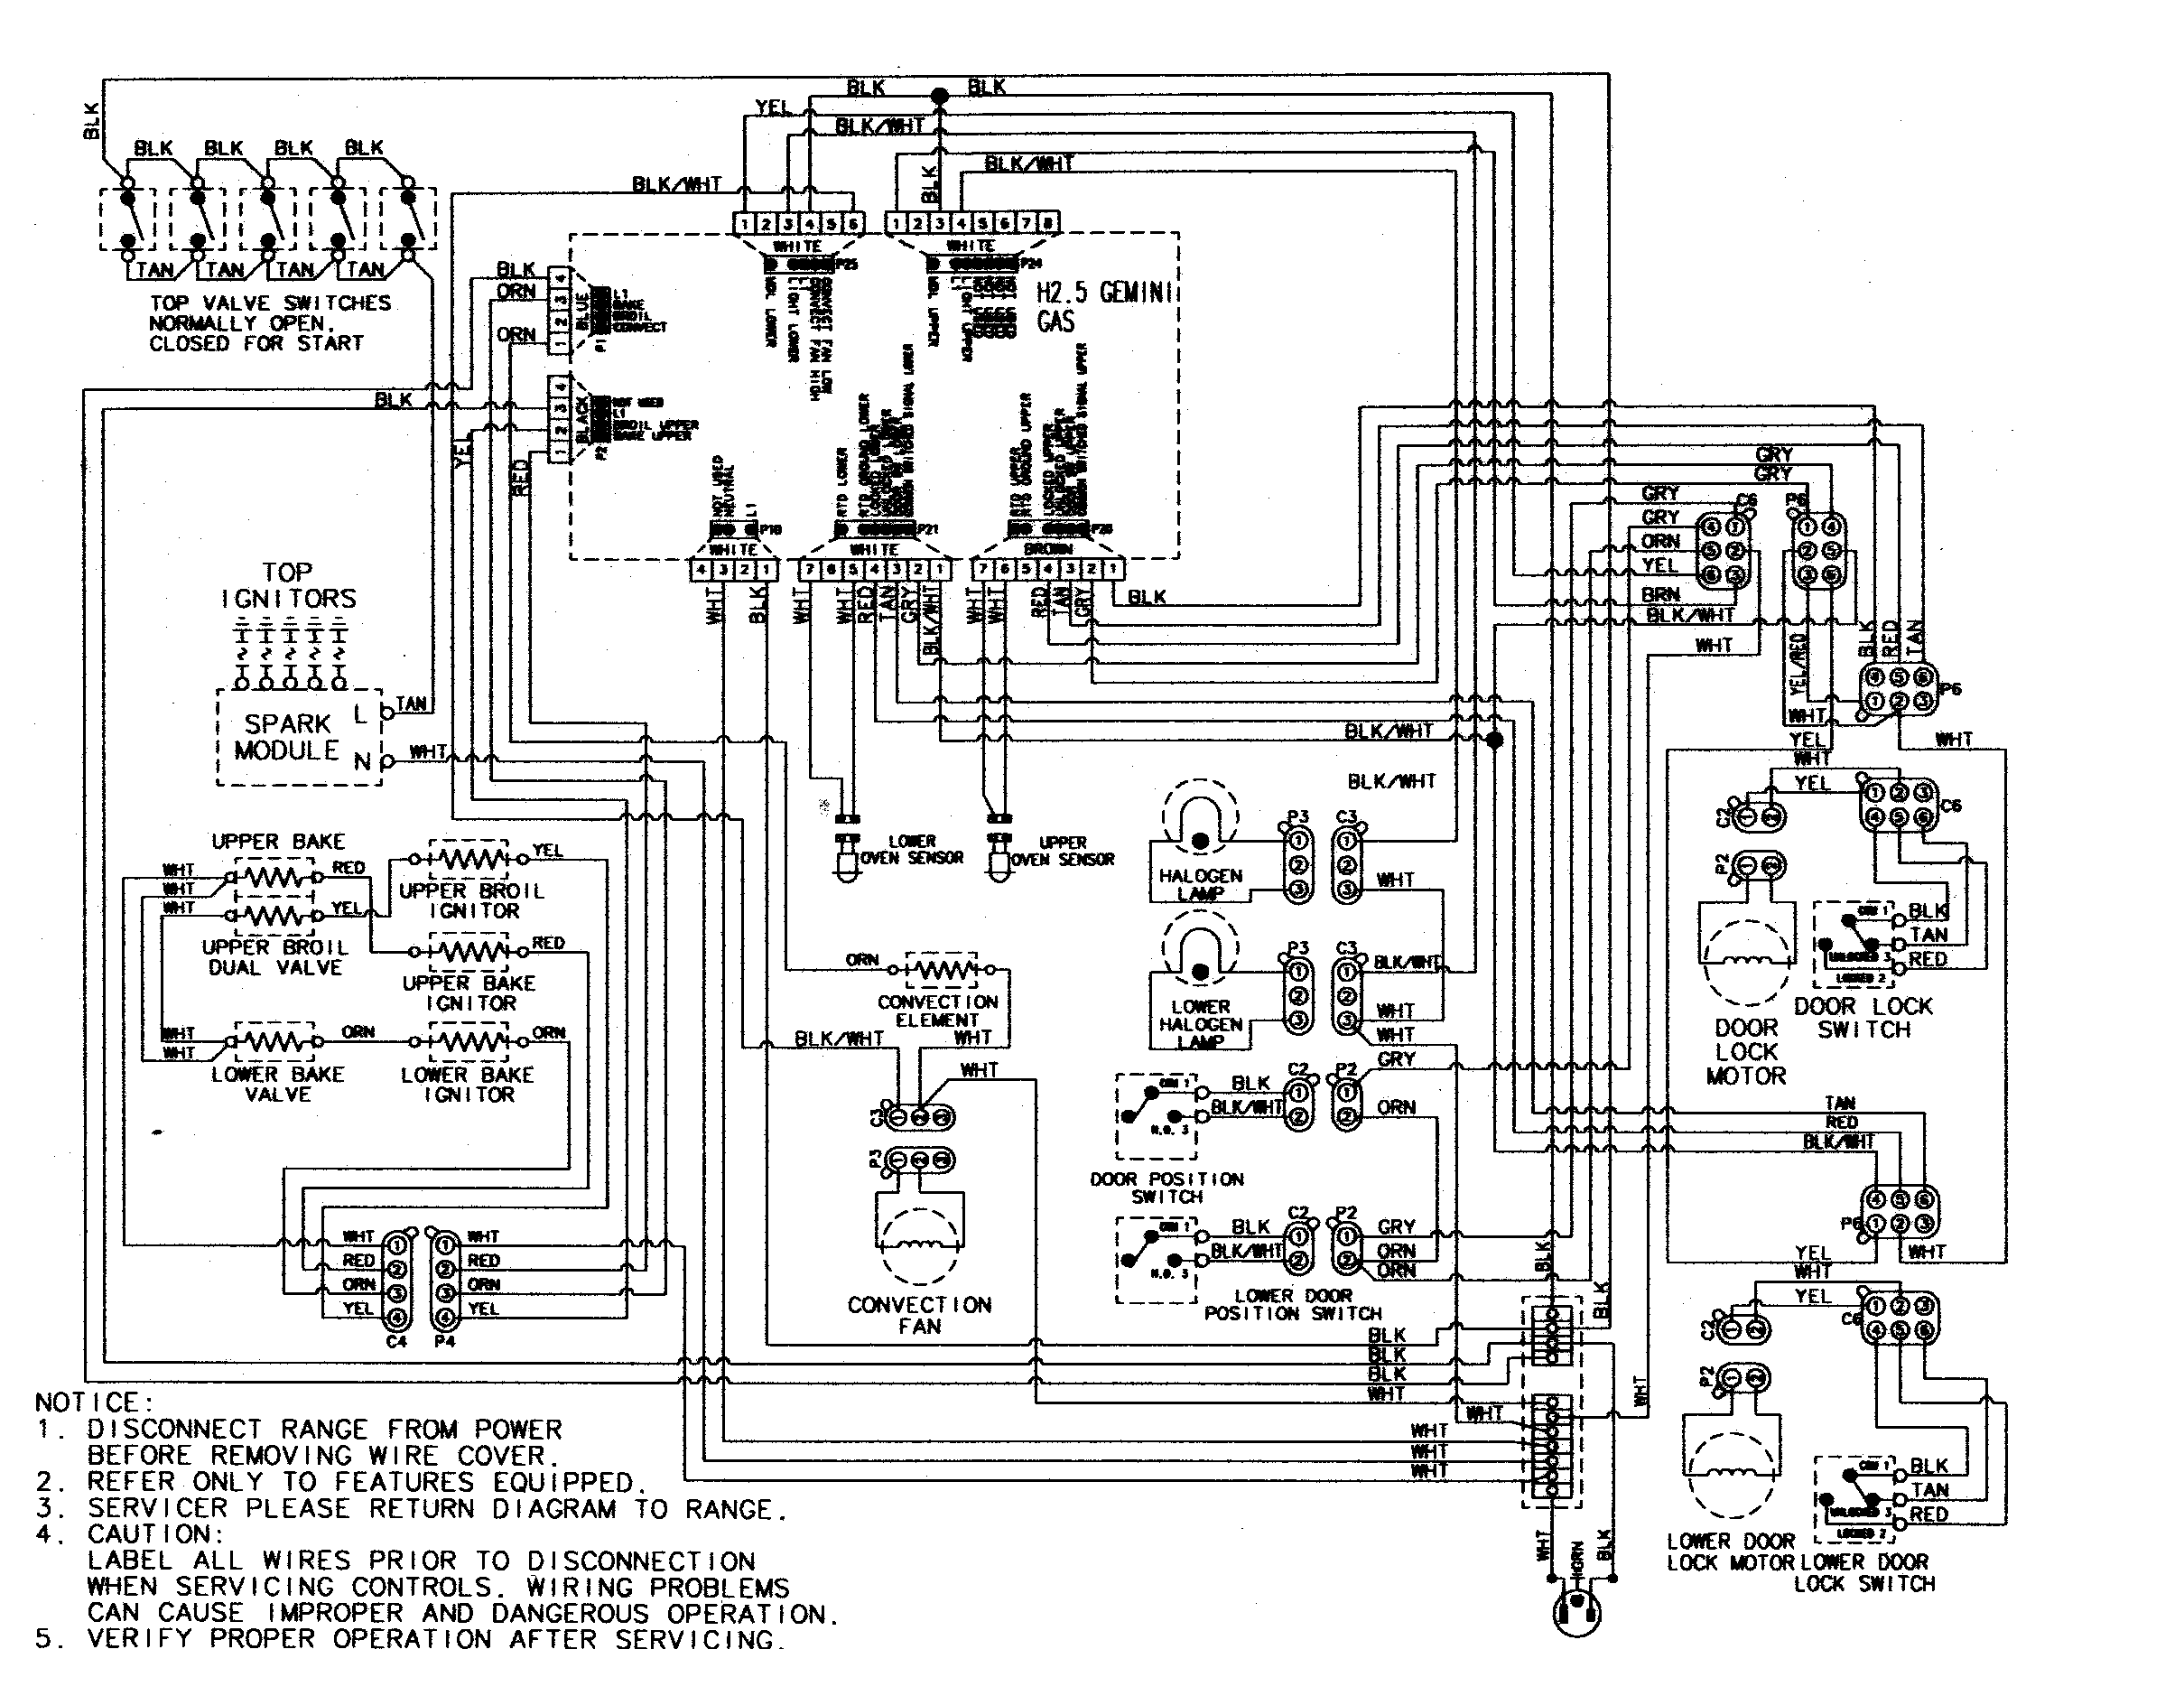 Maytag Neptune Dryer Plug Wiring Diagram - Wire Data Schema •